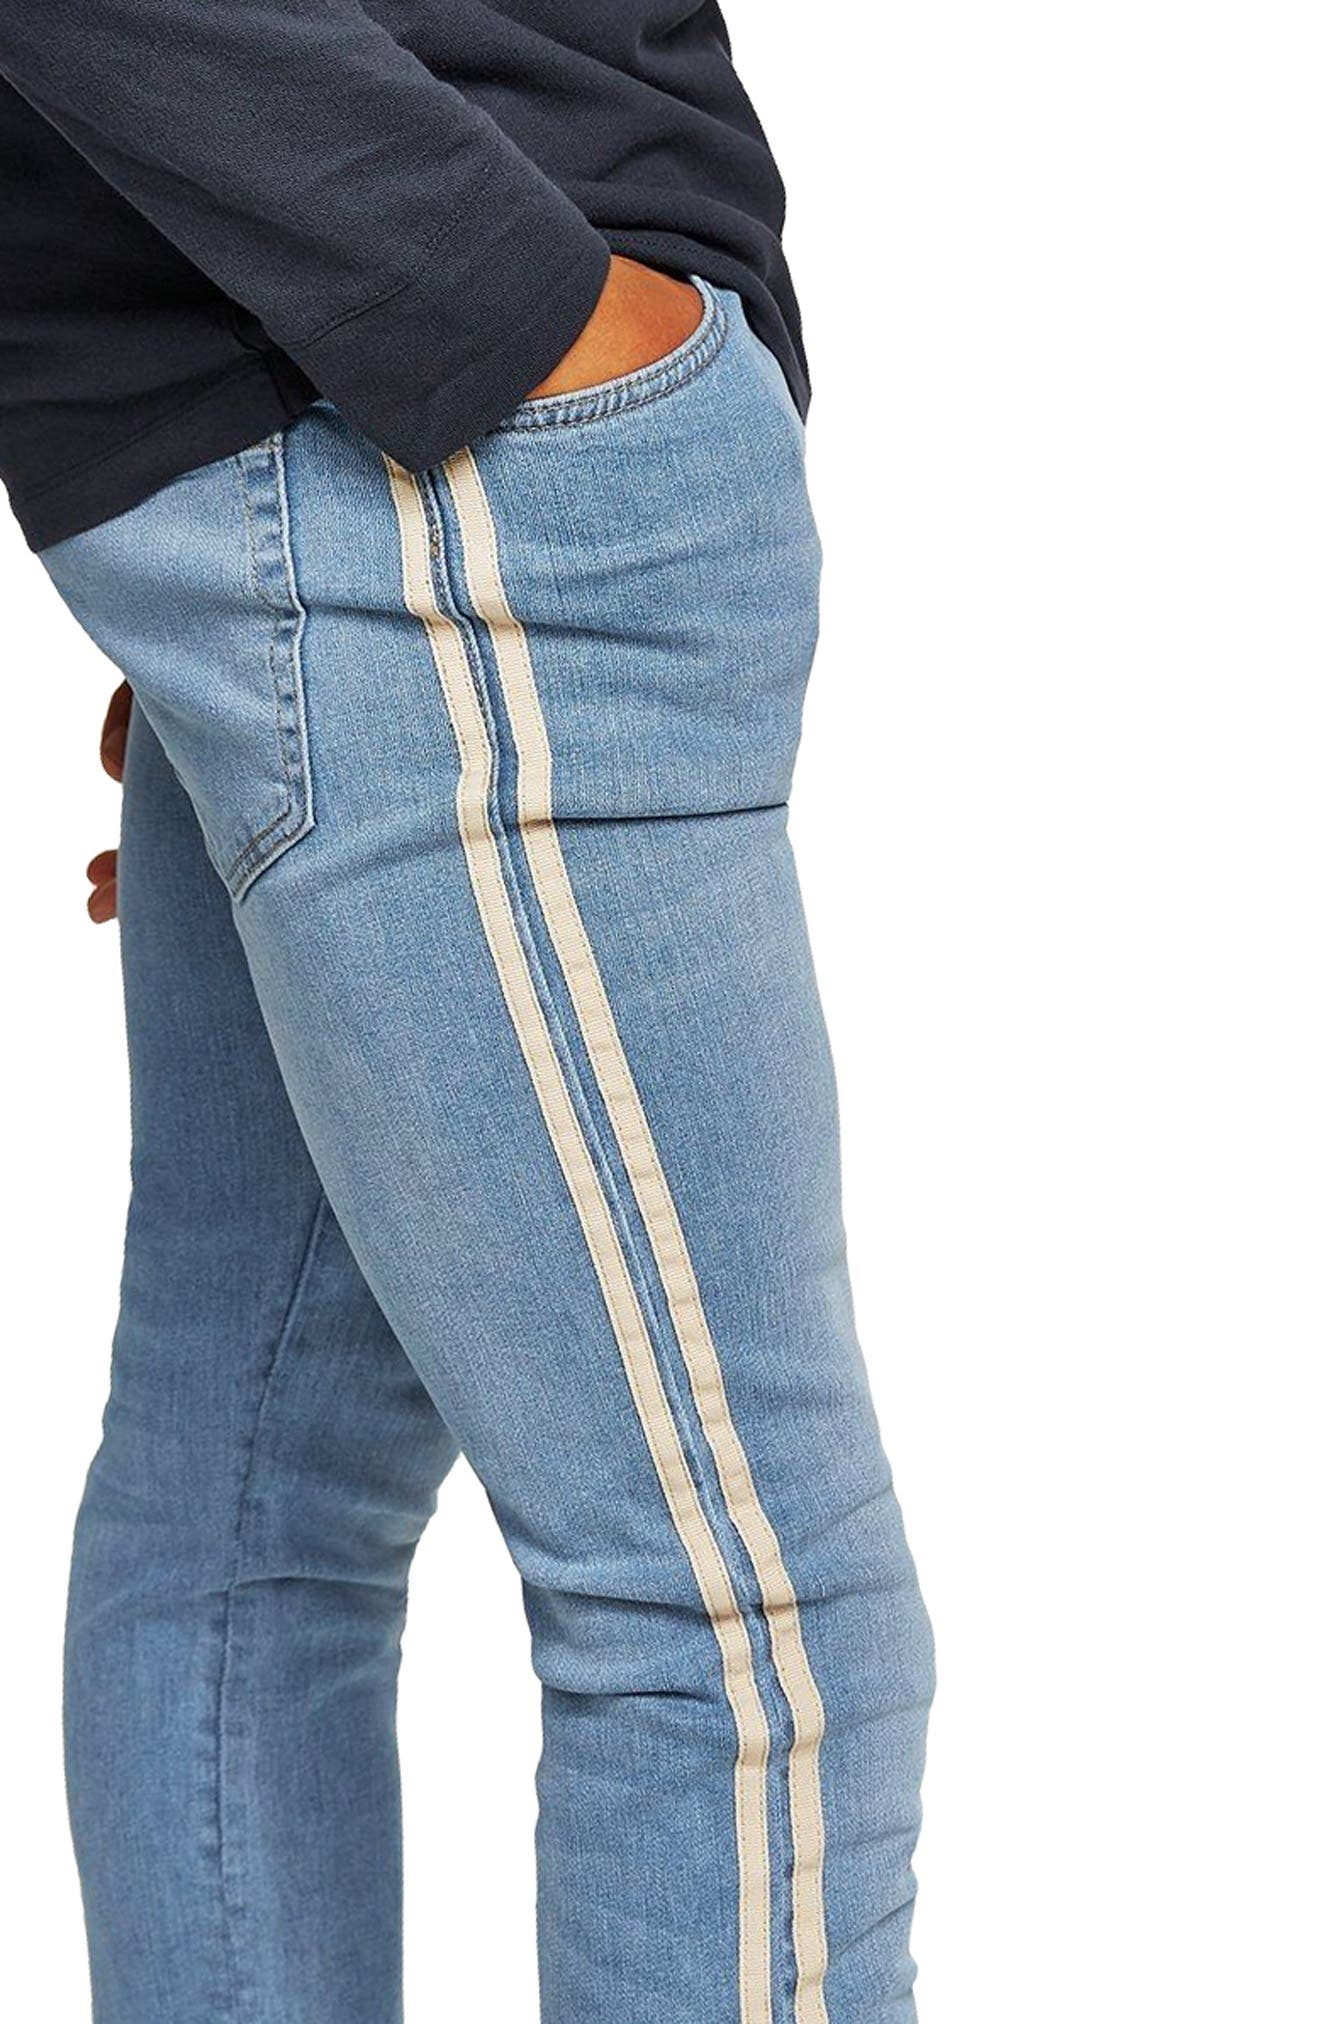 Tape Stretch Skinny Fit Jeans,                             Alternate thumbnail 4, color,                             BLUE